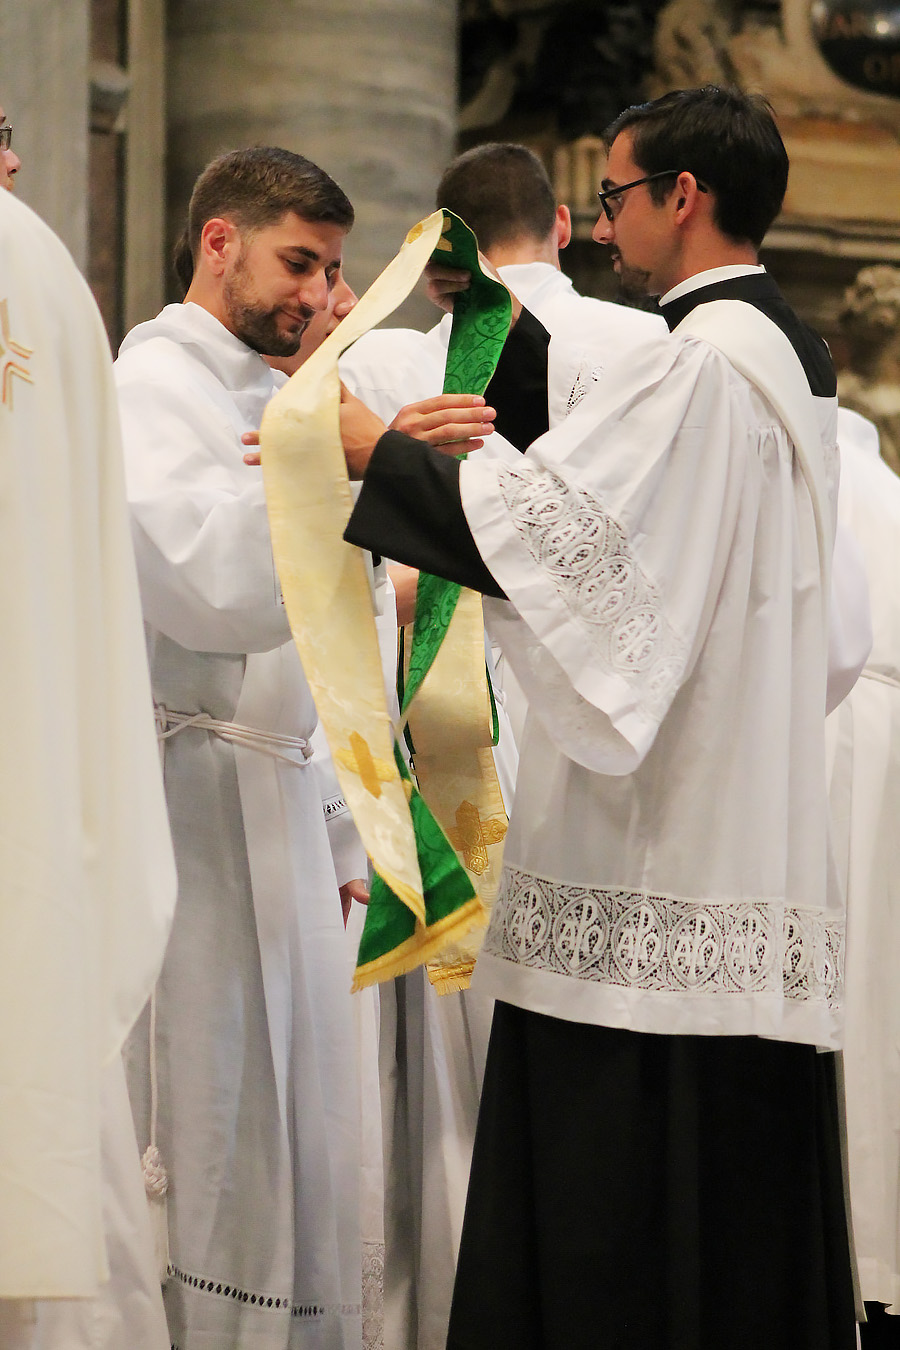 Daniel Ordained Transitional Deacon in Lexington Diocese, KY